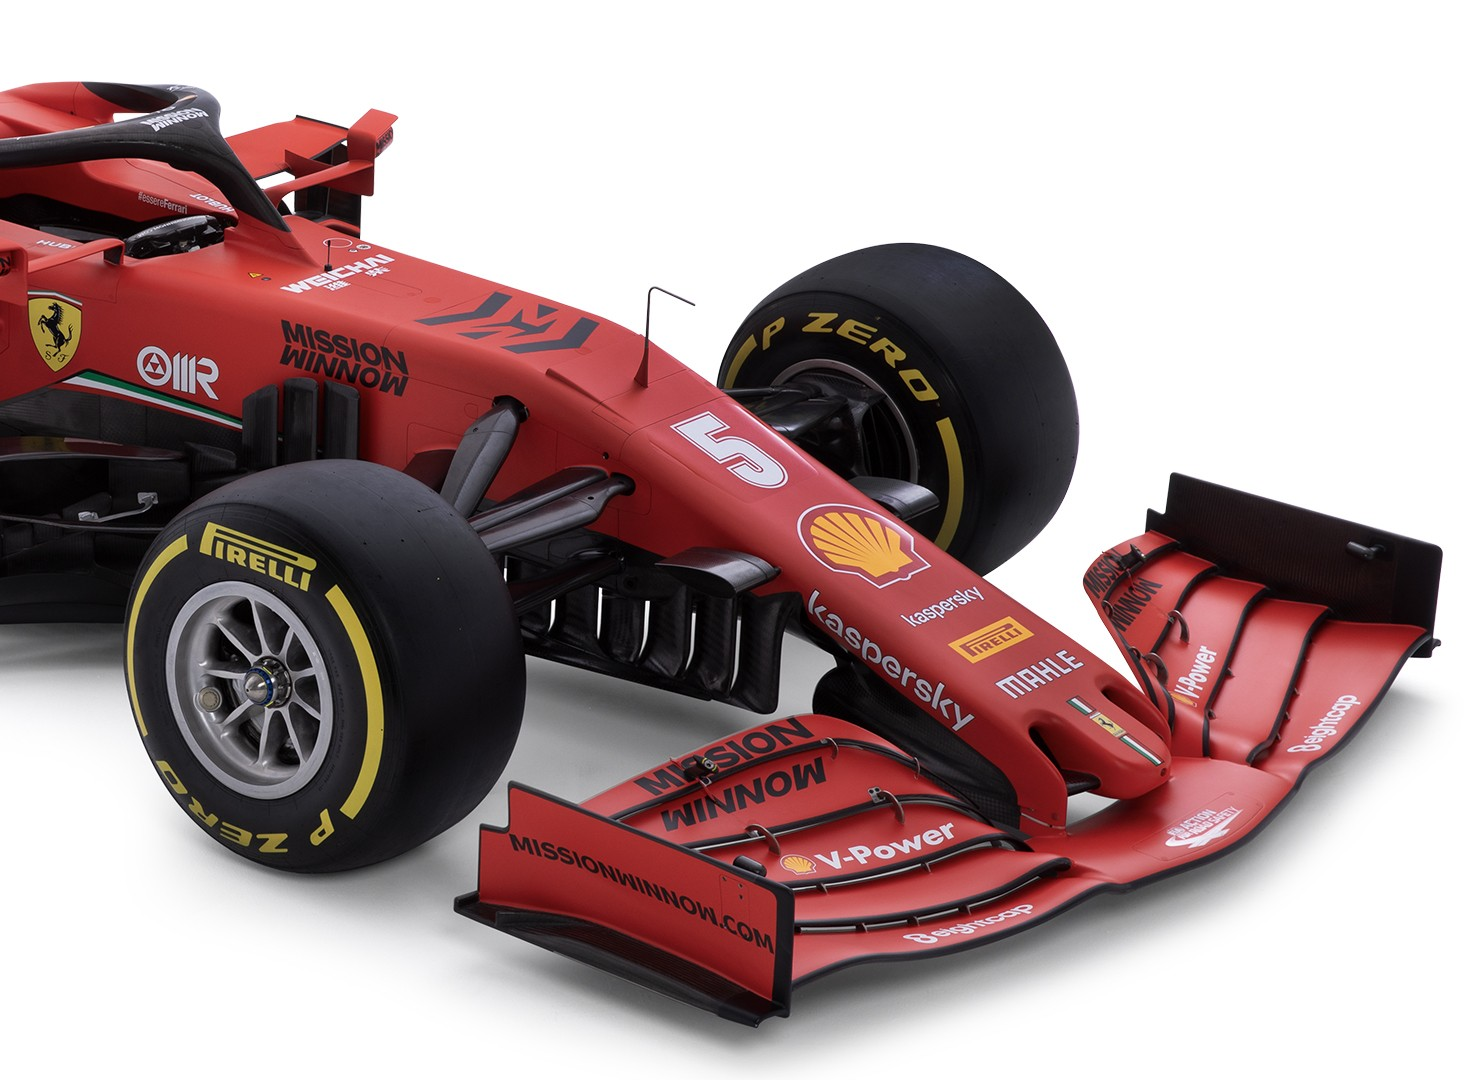 ferrari is in legal trouble over 2020 formula 1 car just days after launching it